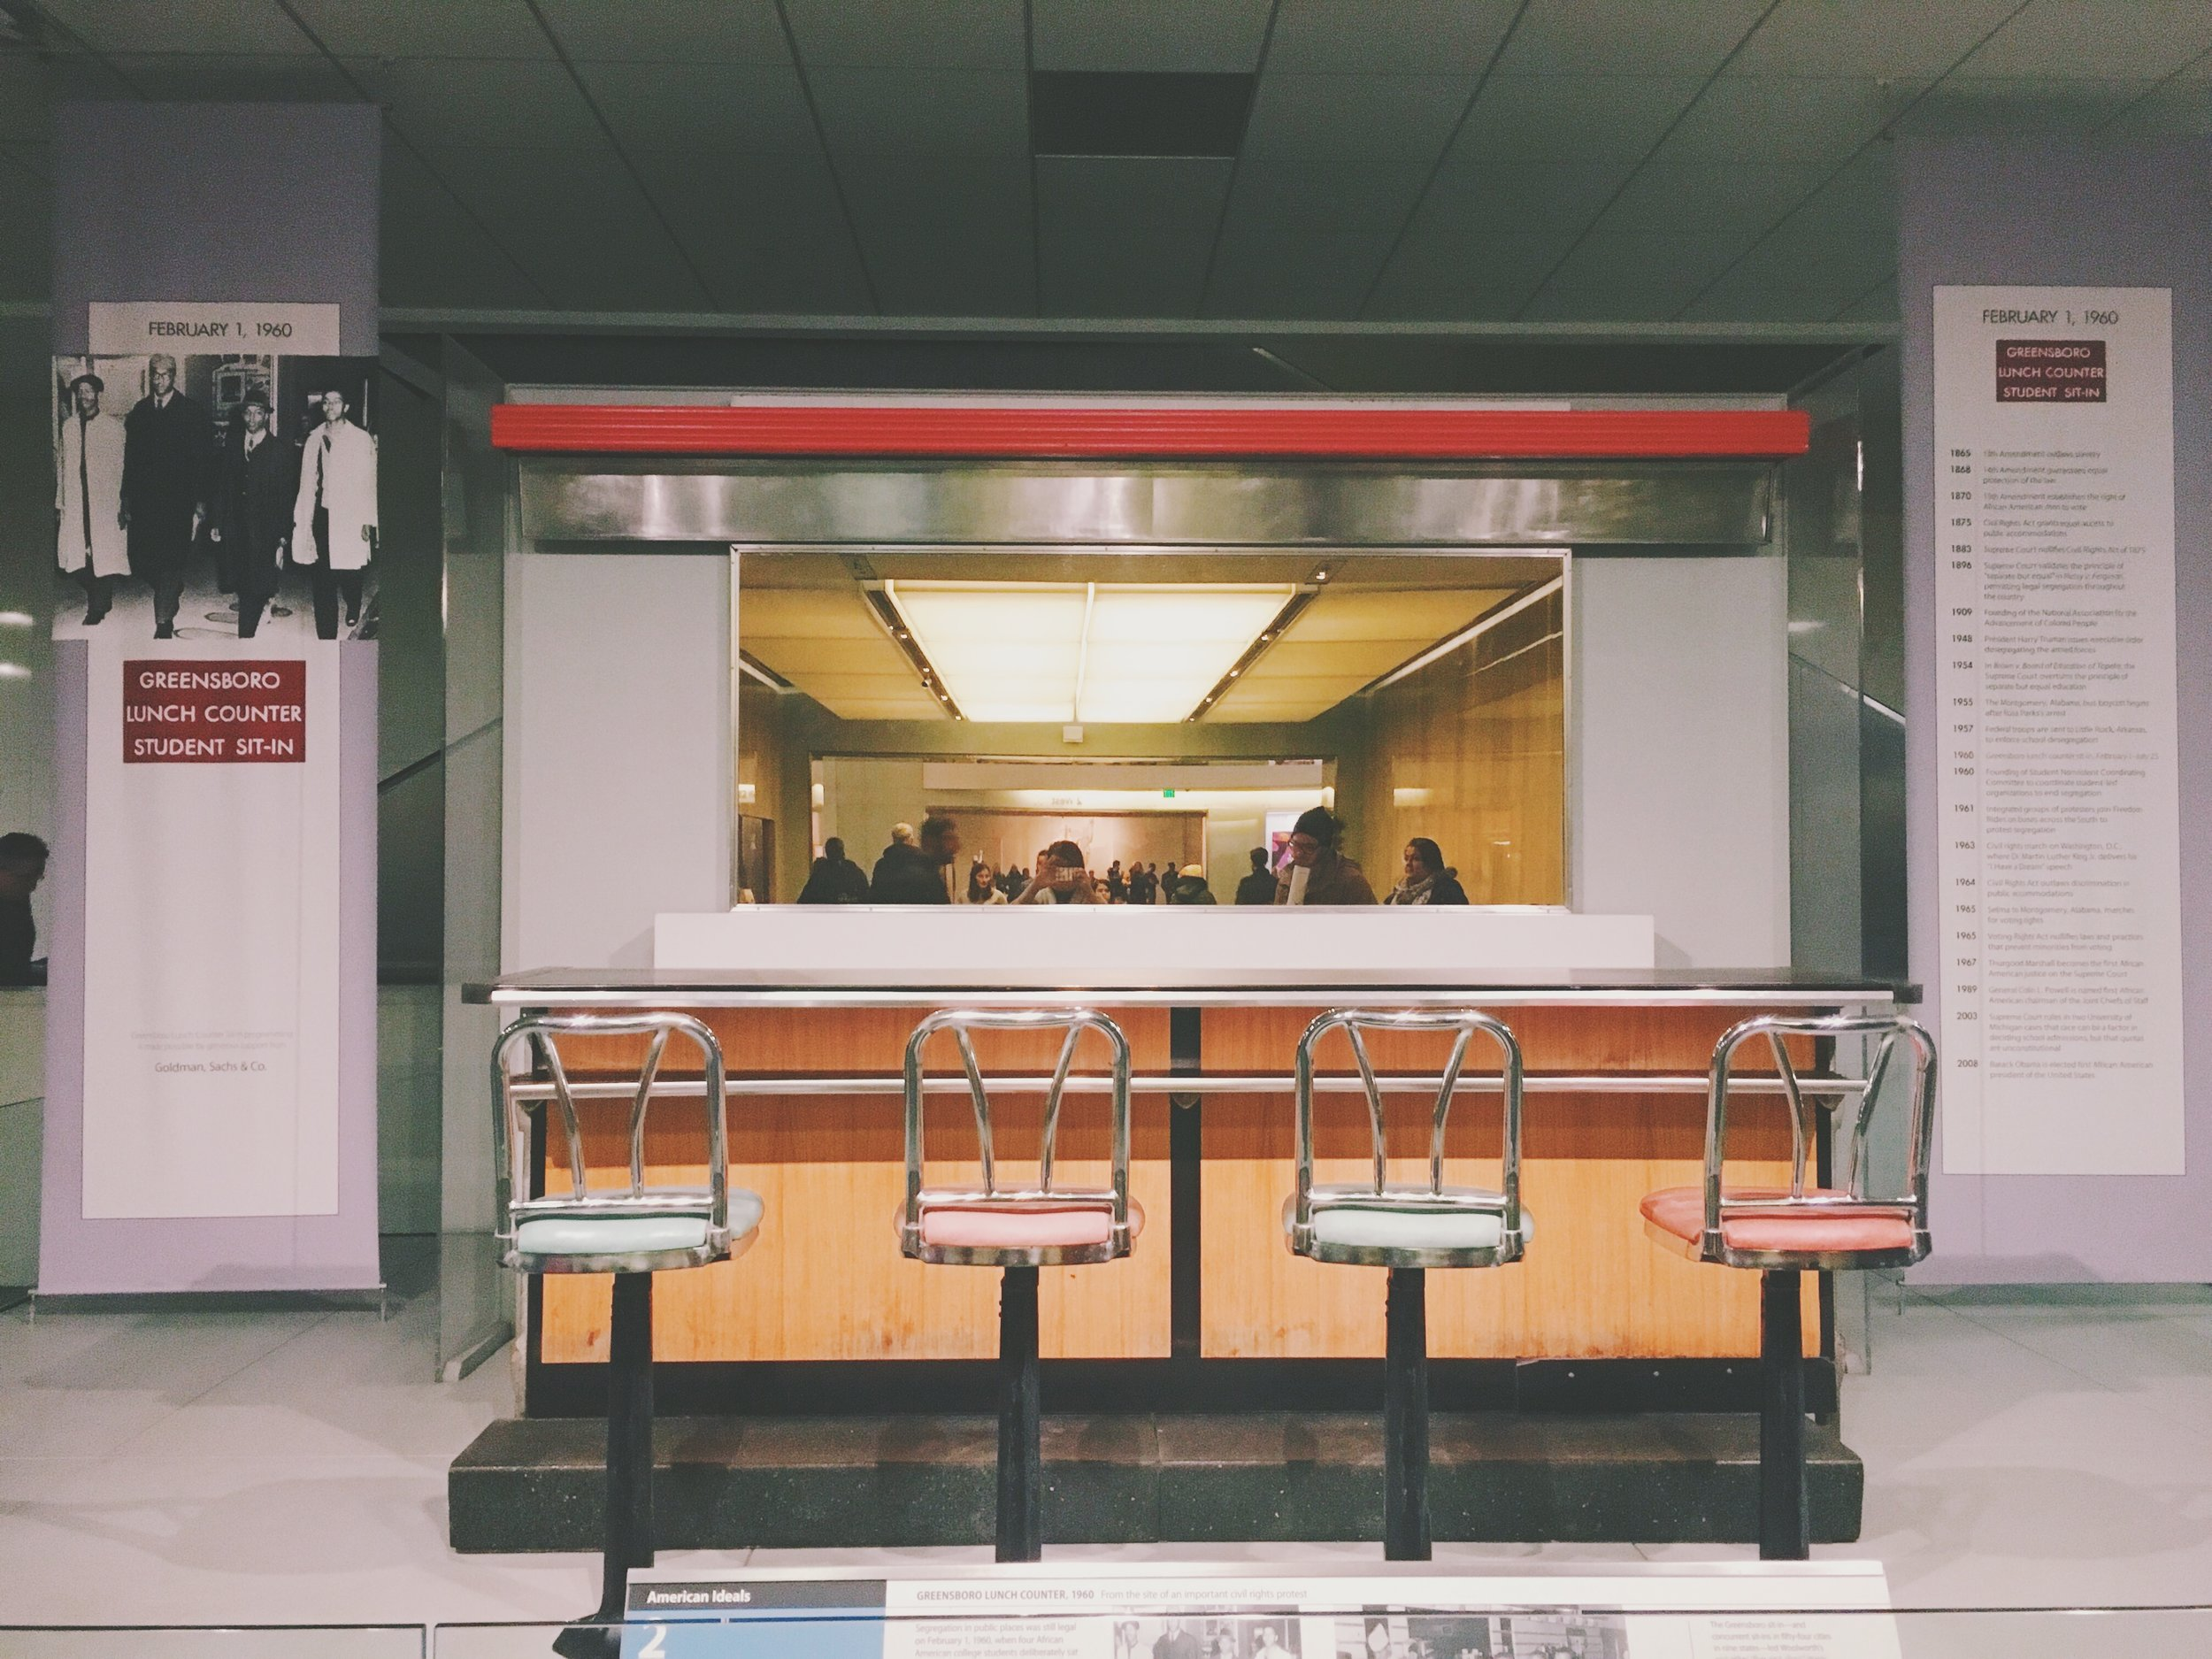 smithsonian-greensboro lunch counter